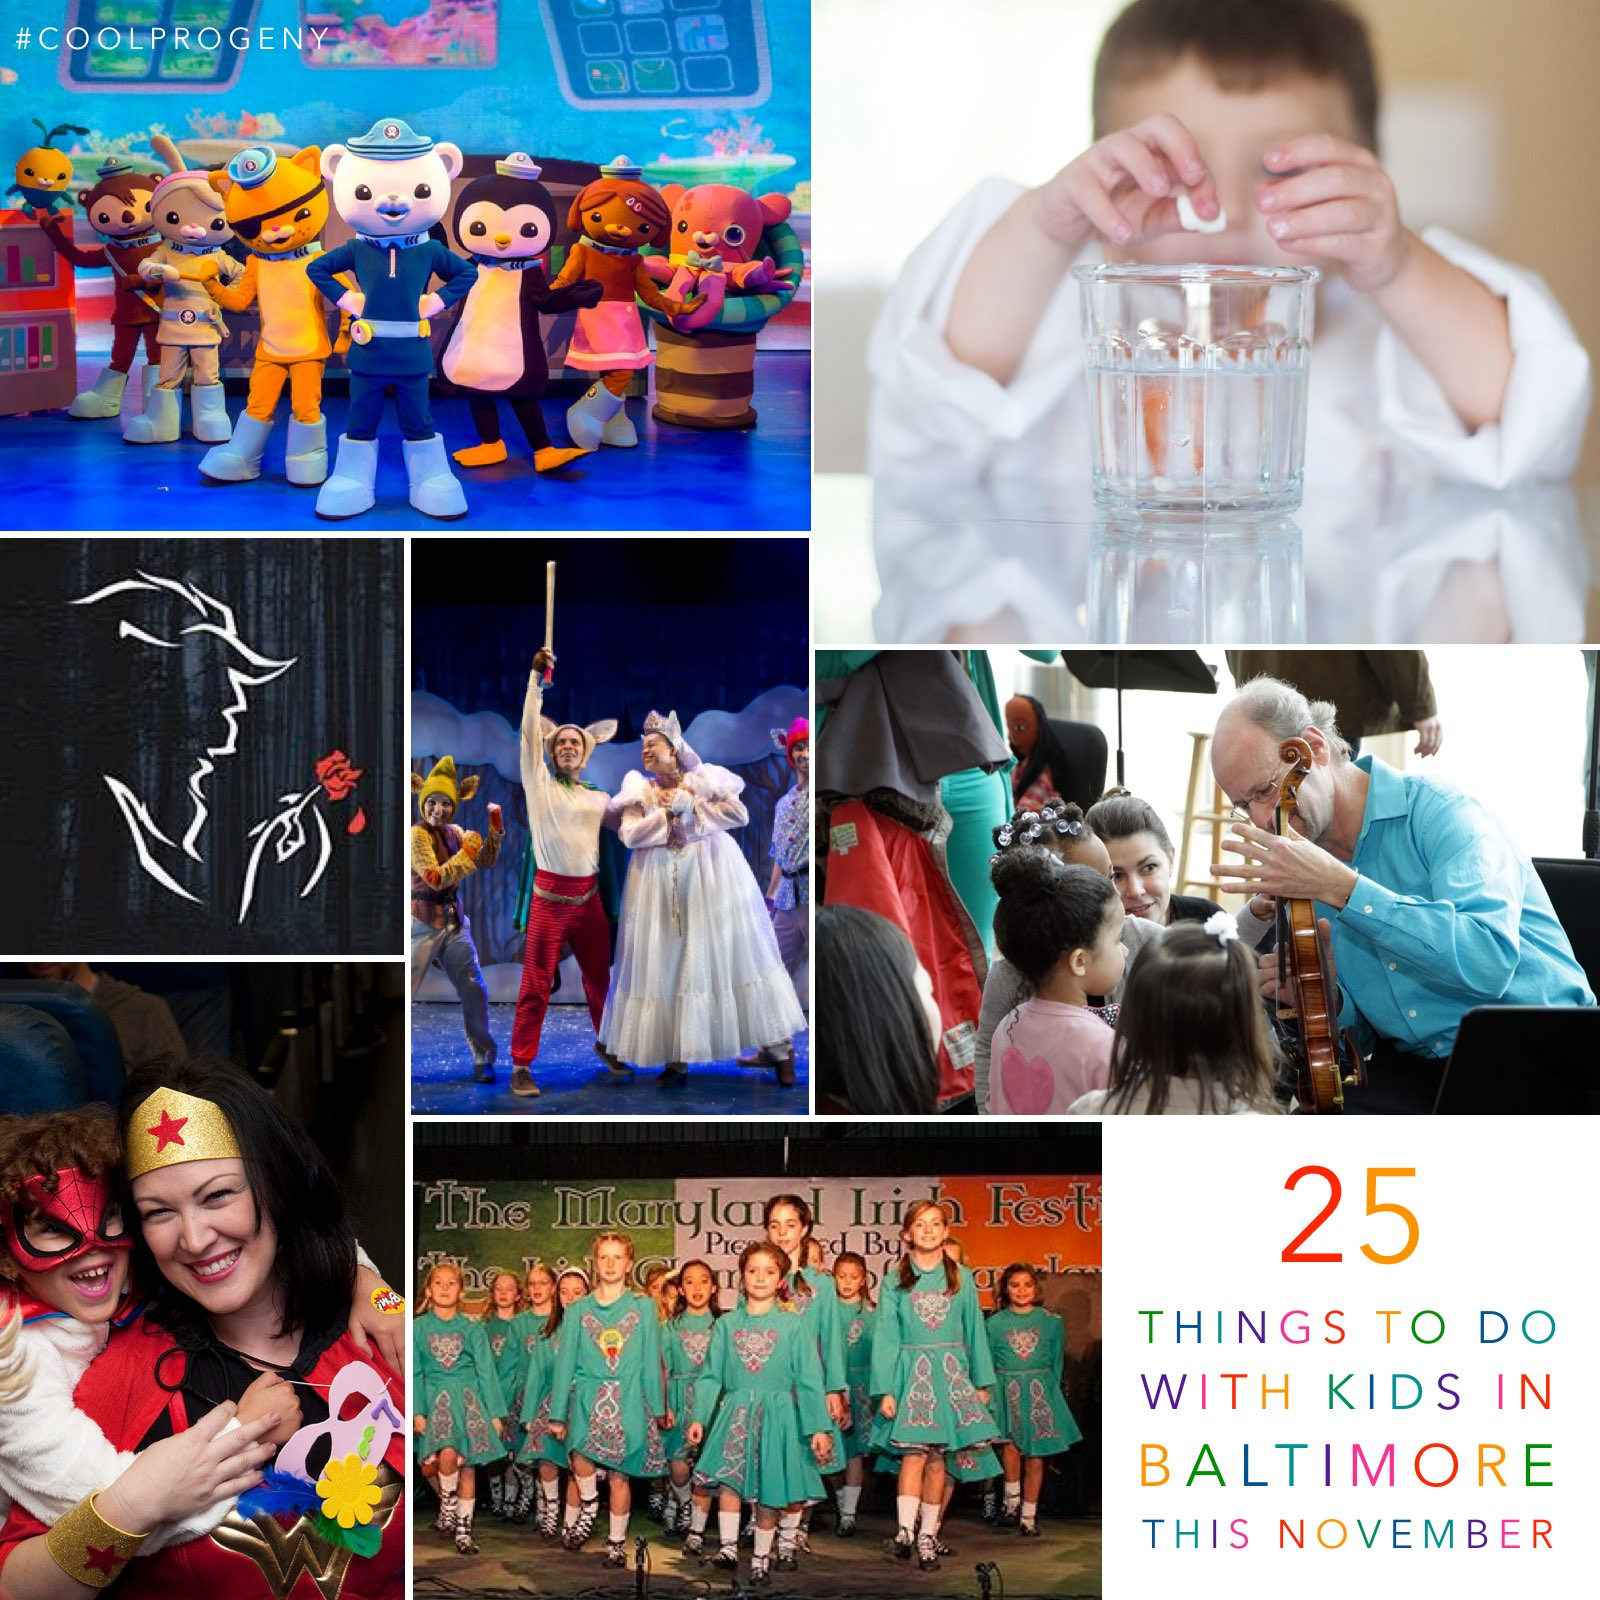 25 Things To Do with Kids in Baltimore this November = (cool) progeny